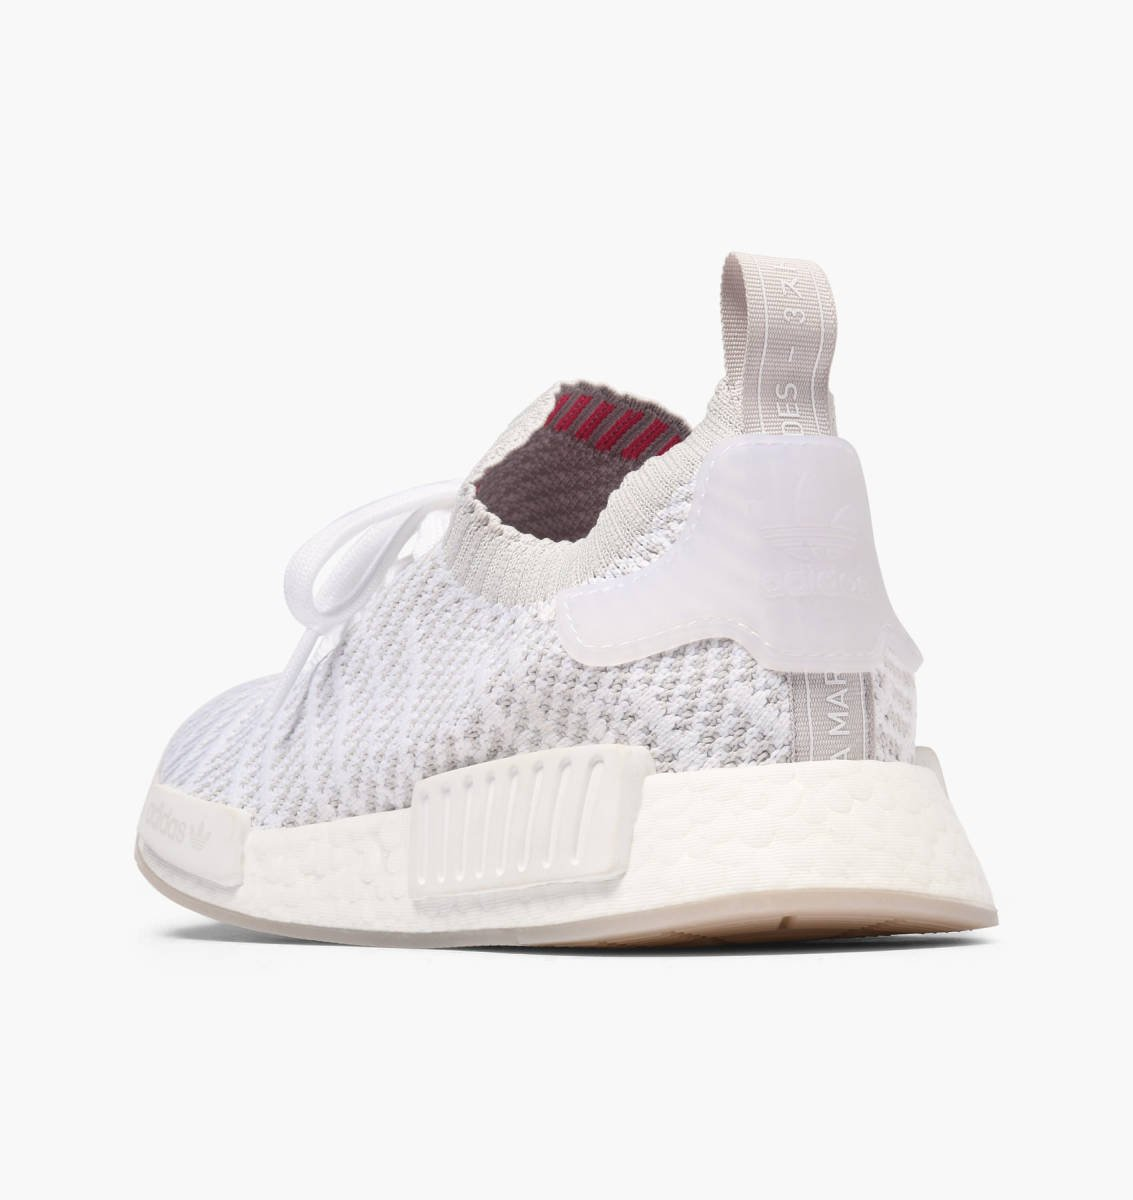 0a6b1776e37d4 adidas Originals NMD R1 STLT PK in weiss - CQ2390